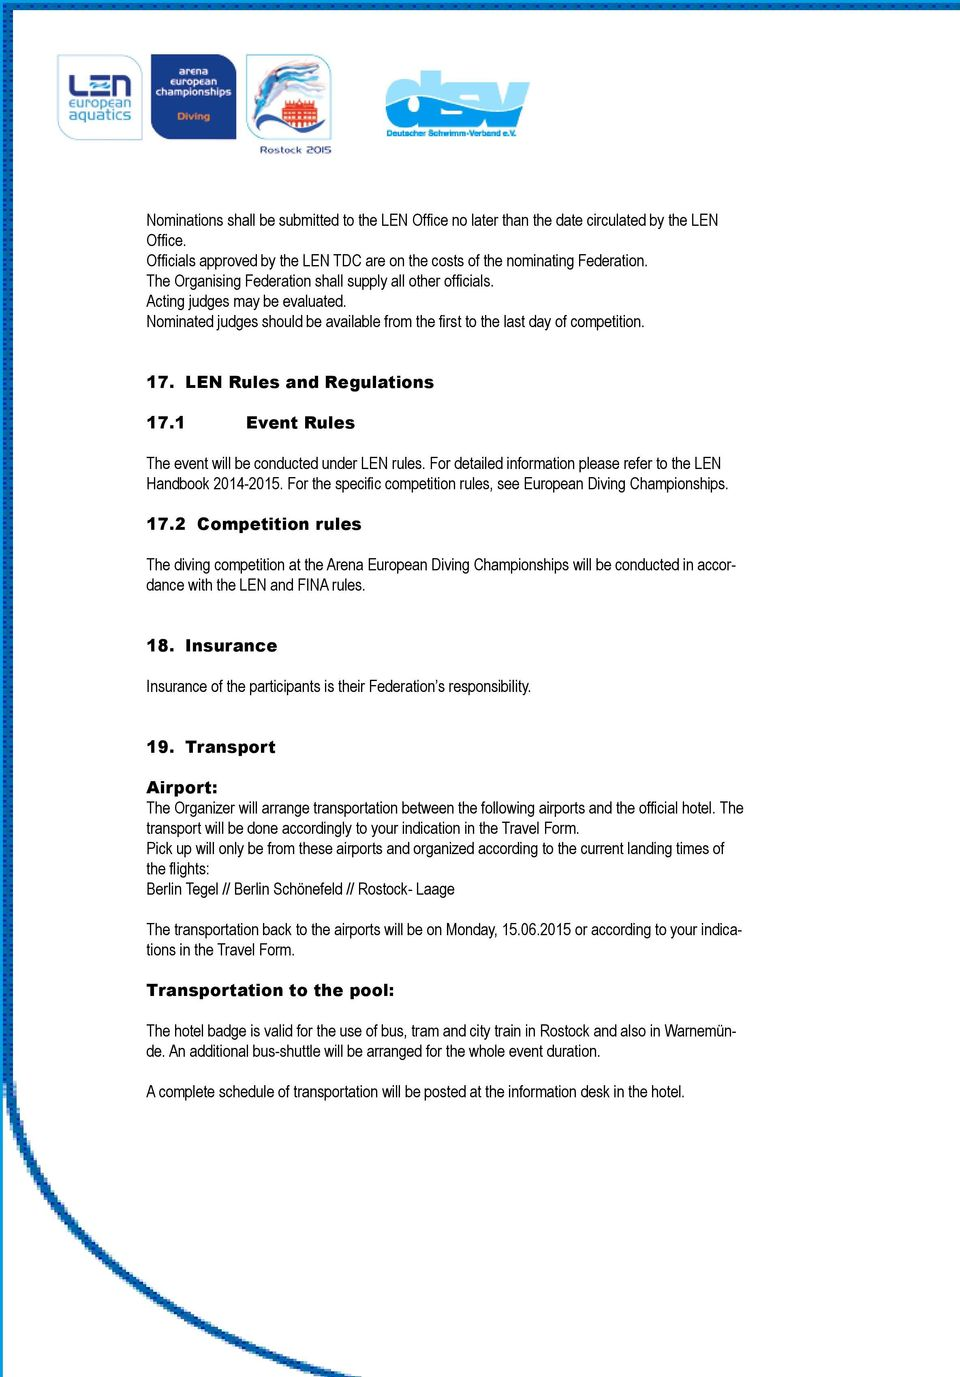 LEN Rules and Regulations 17.1 Event Rules The event will be conducted under LEN rules. For detailed information please refer to the LEN Handbook 2014-2015.